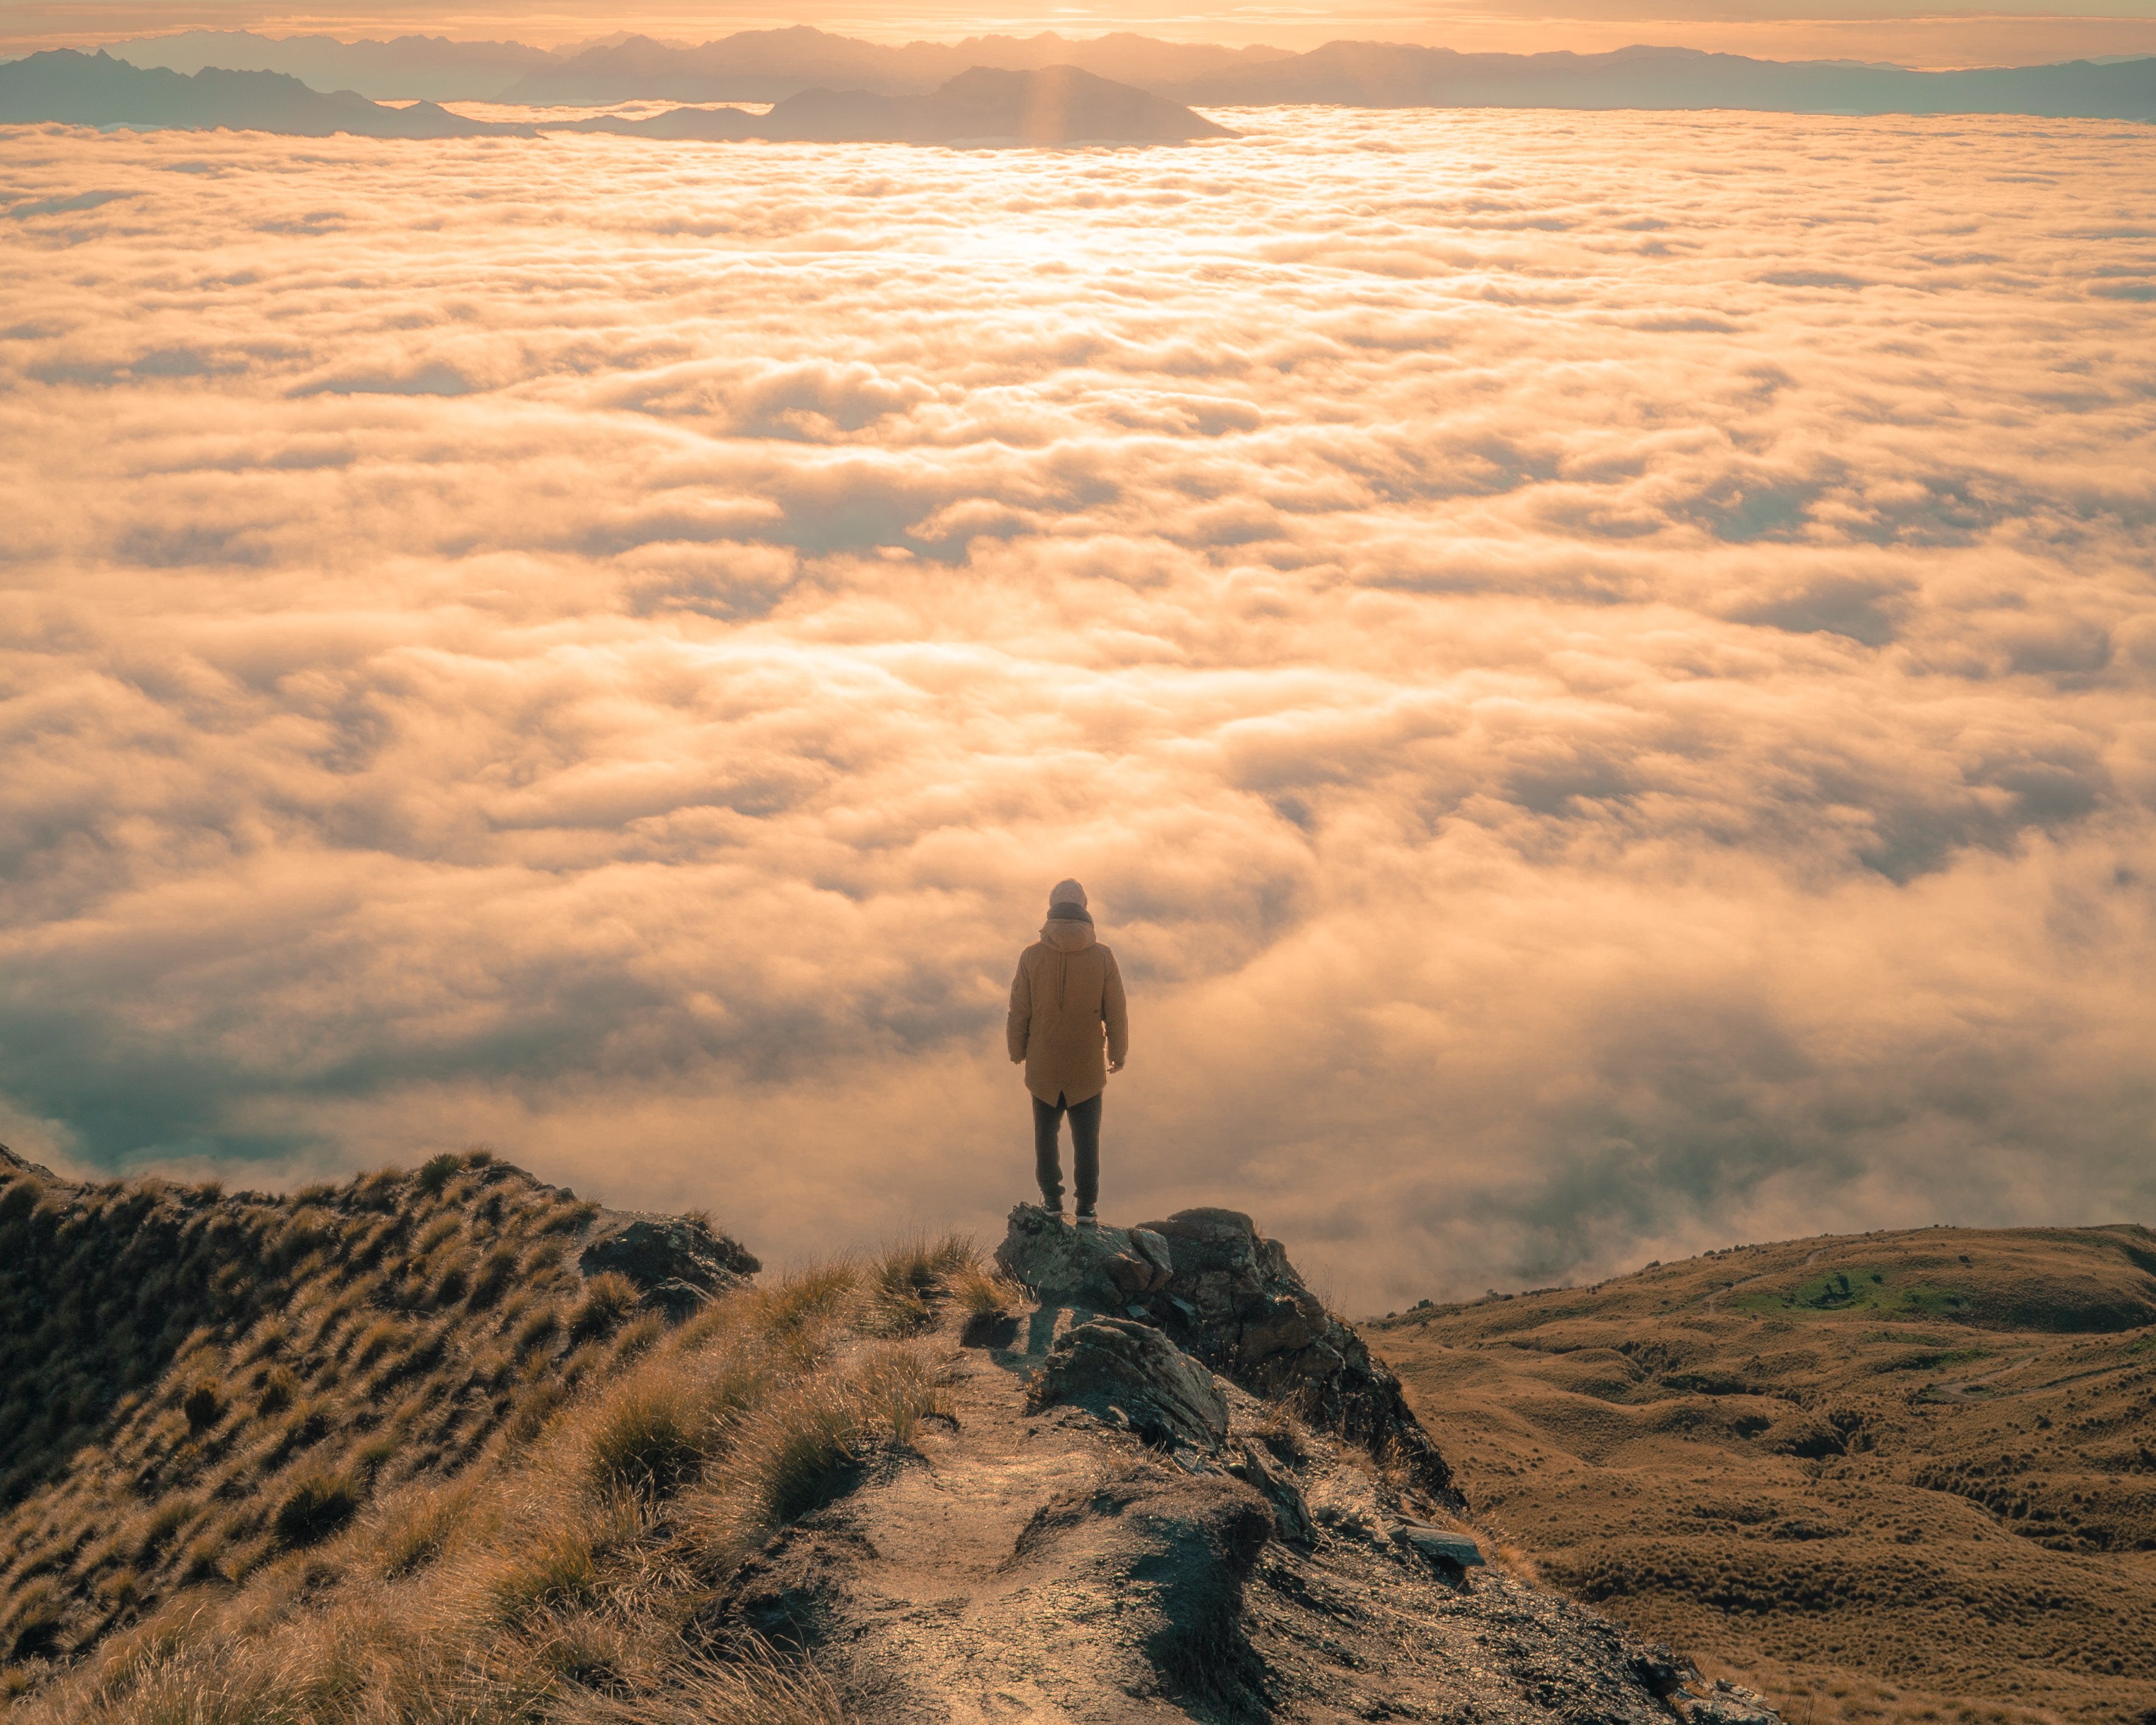 Standing at the mountain summit in front of a sea of clouds